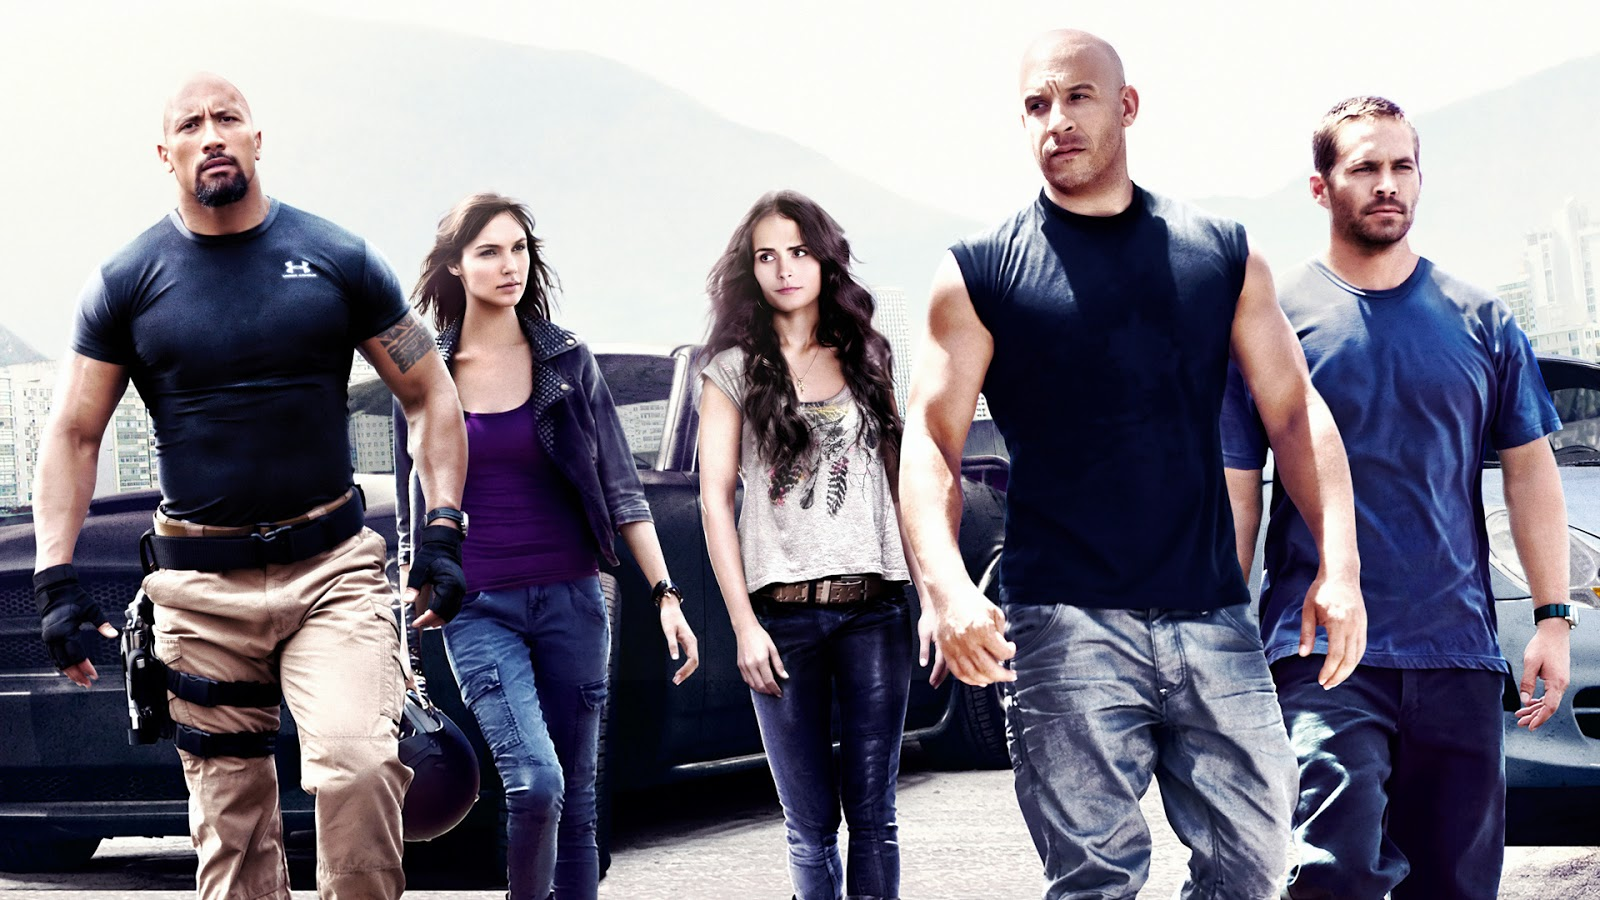 Fast furious 8 film hd wallpapers download free 1080p - Furious 8 wallpaper ...